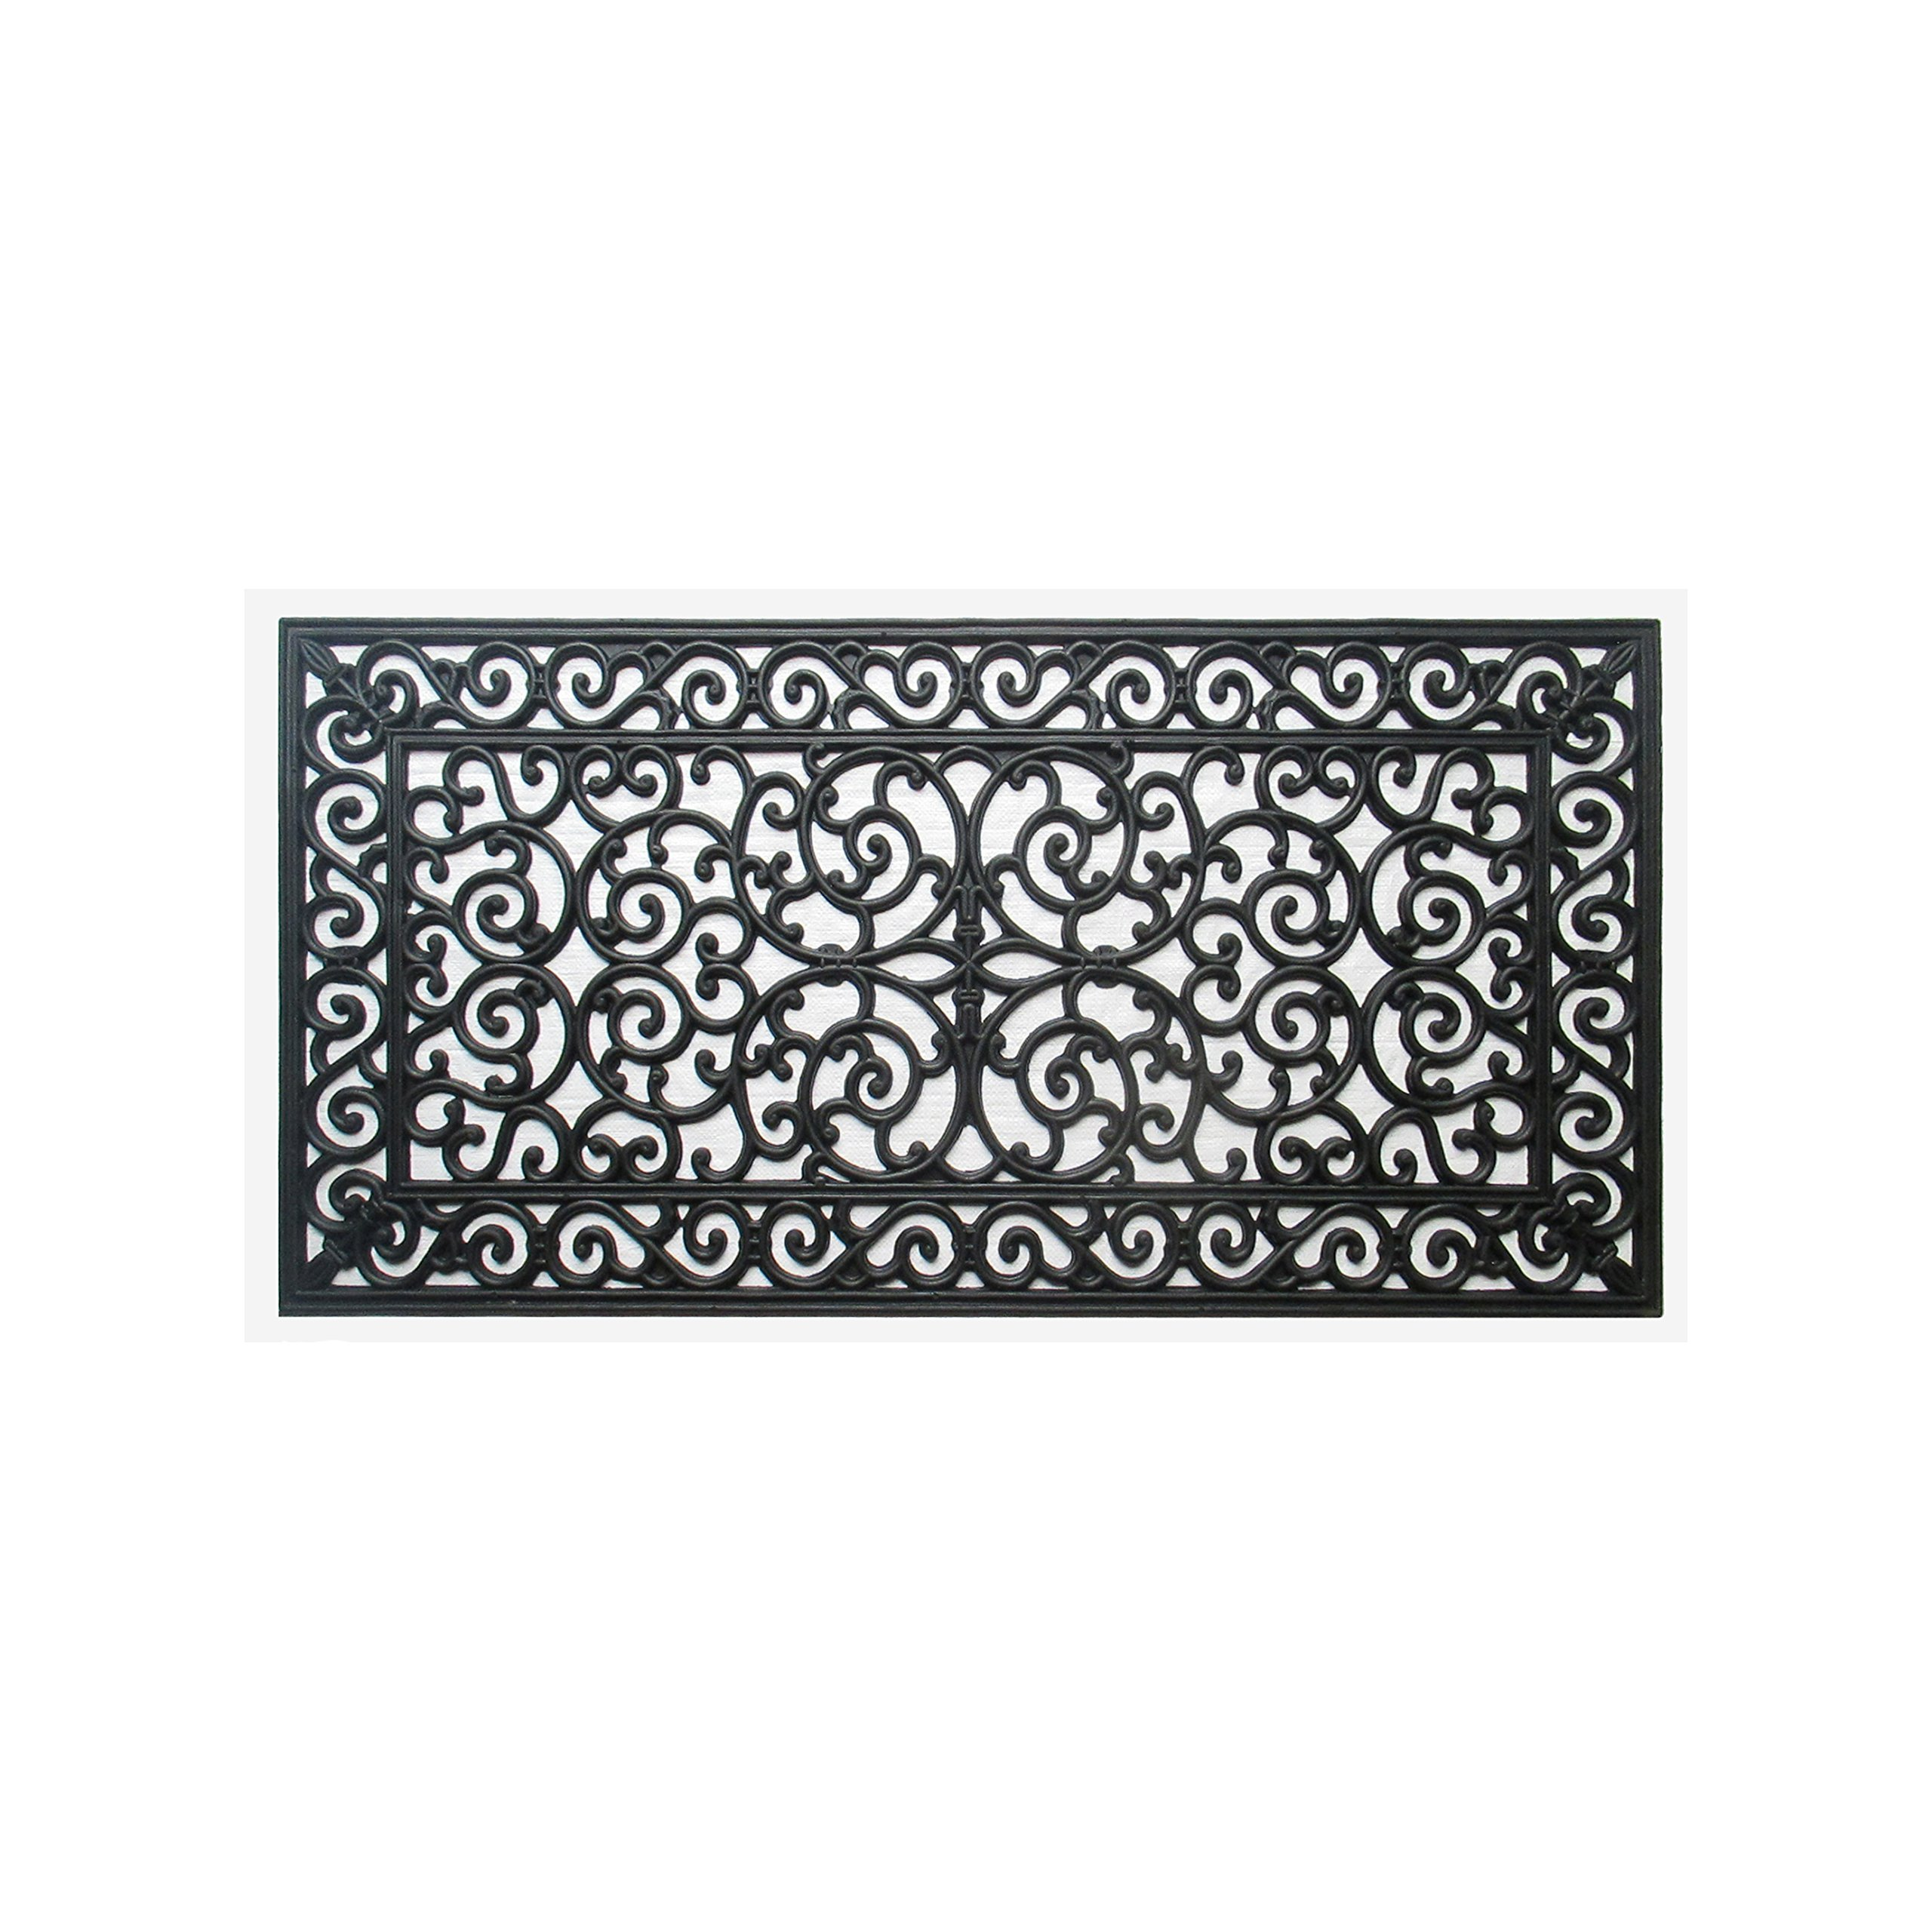 A1 Home Collections FIRST IMPRESSION Audie Modern Indoor/Outdoor 23.62'' L x 47.25'' W Easy Clean Rubber Entry Way Doormat For Patio, Front Door, All Weather Exterior Doors/Large Size for Double Doors